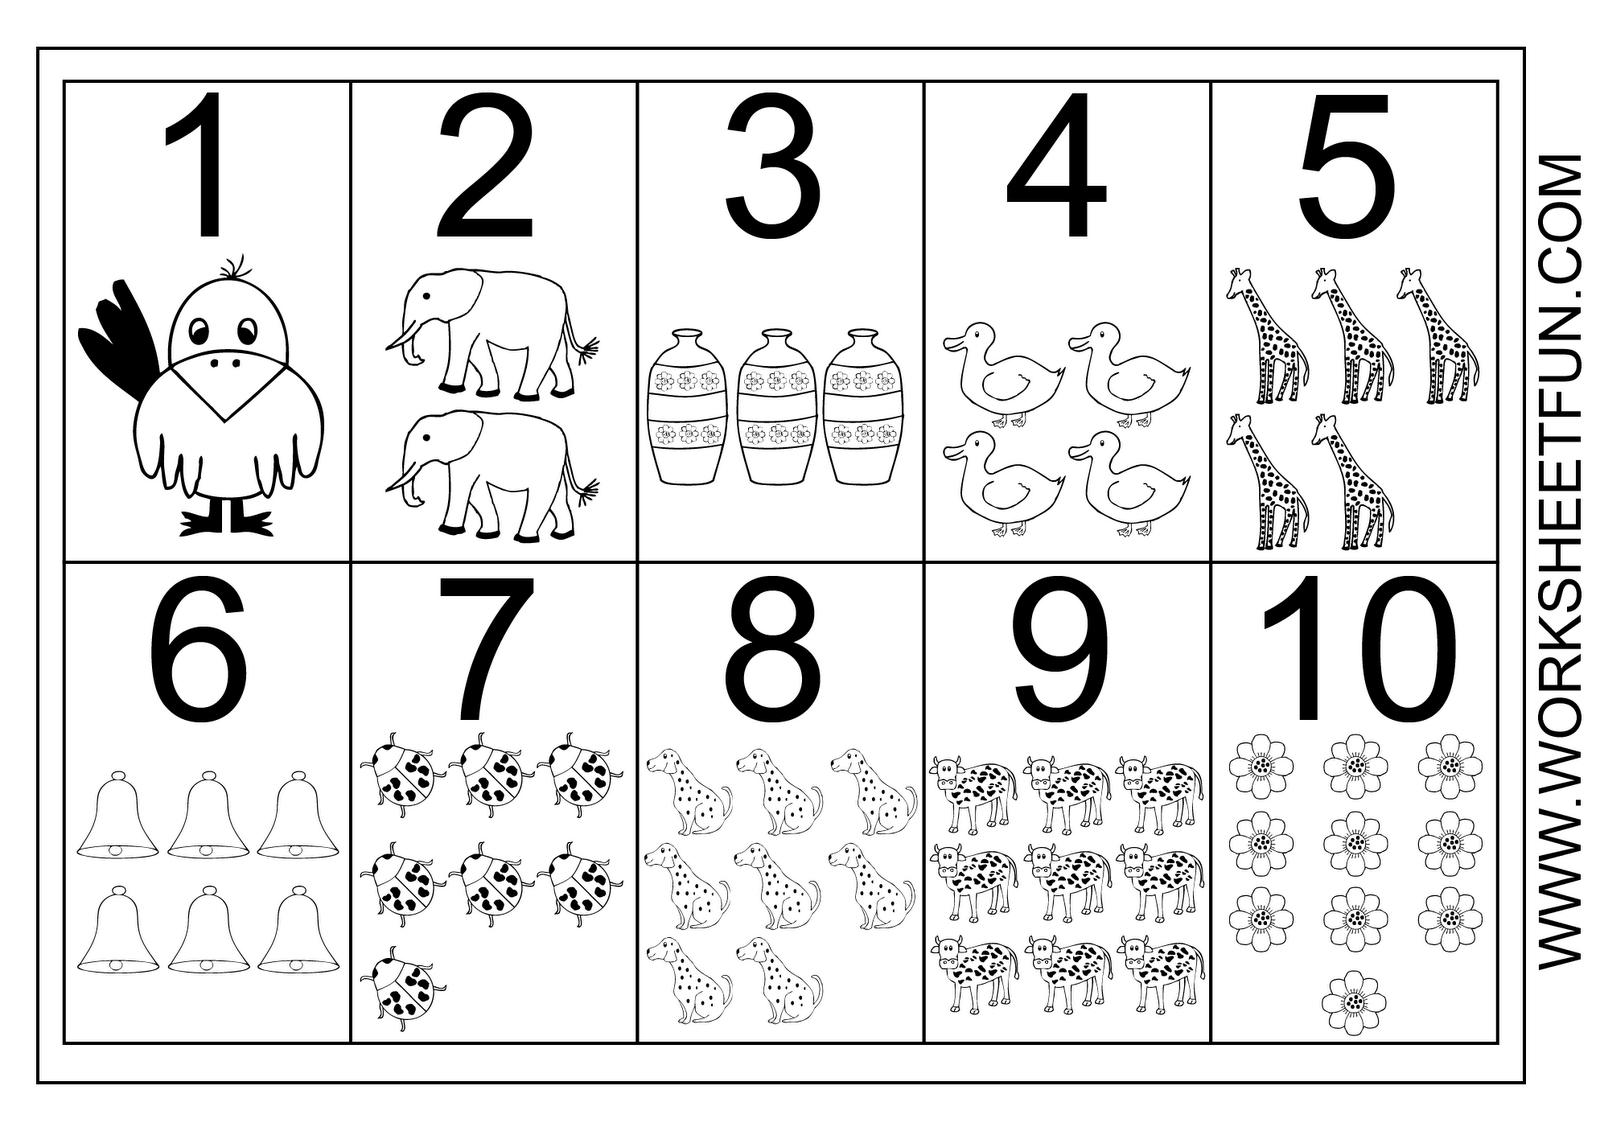 1-10 Worksheets | Numbers 1 10 Printable Worksheet | Teacher - Free Printable Number Chart 1 10